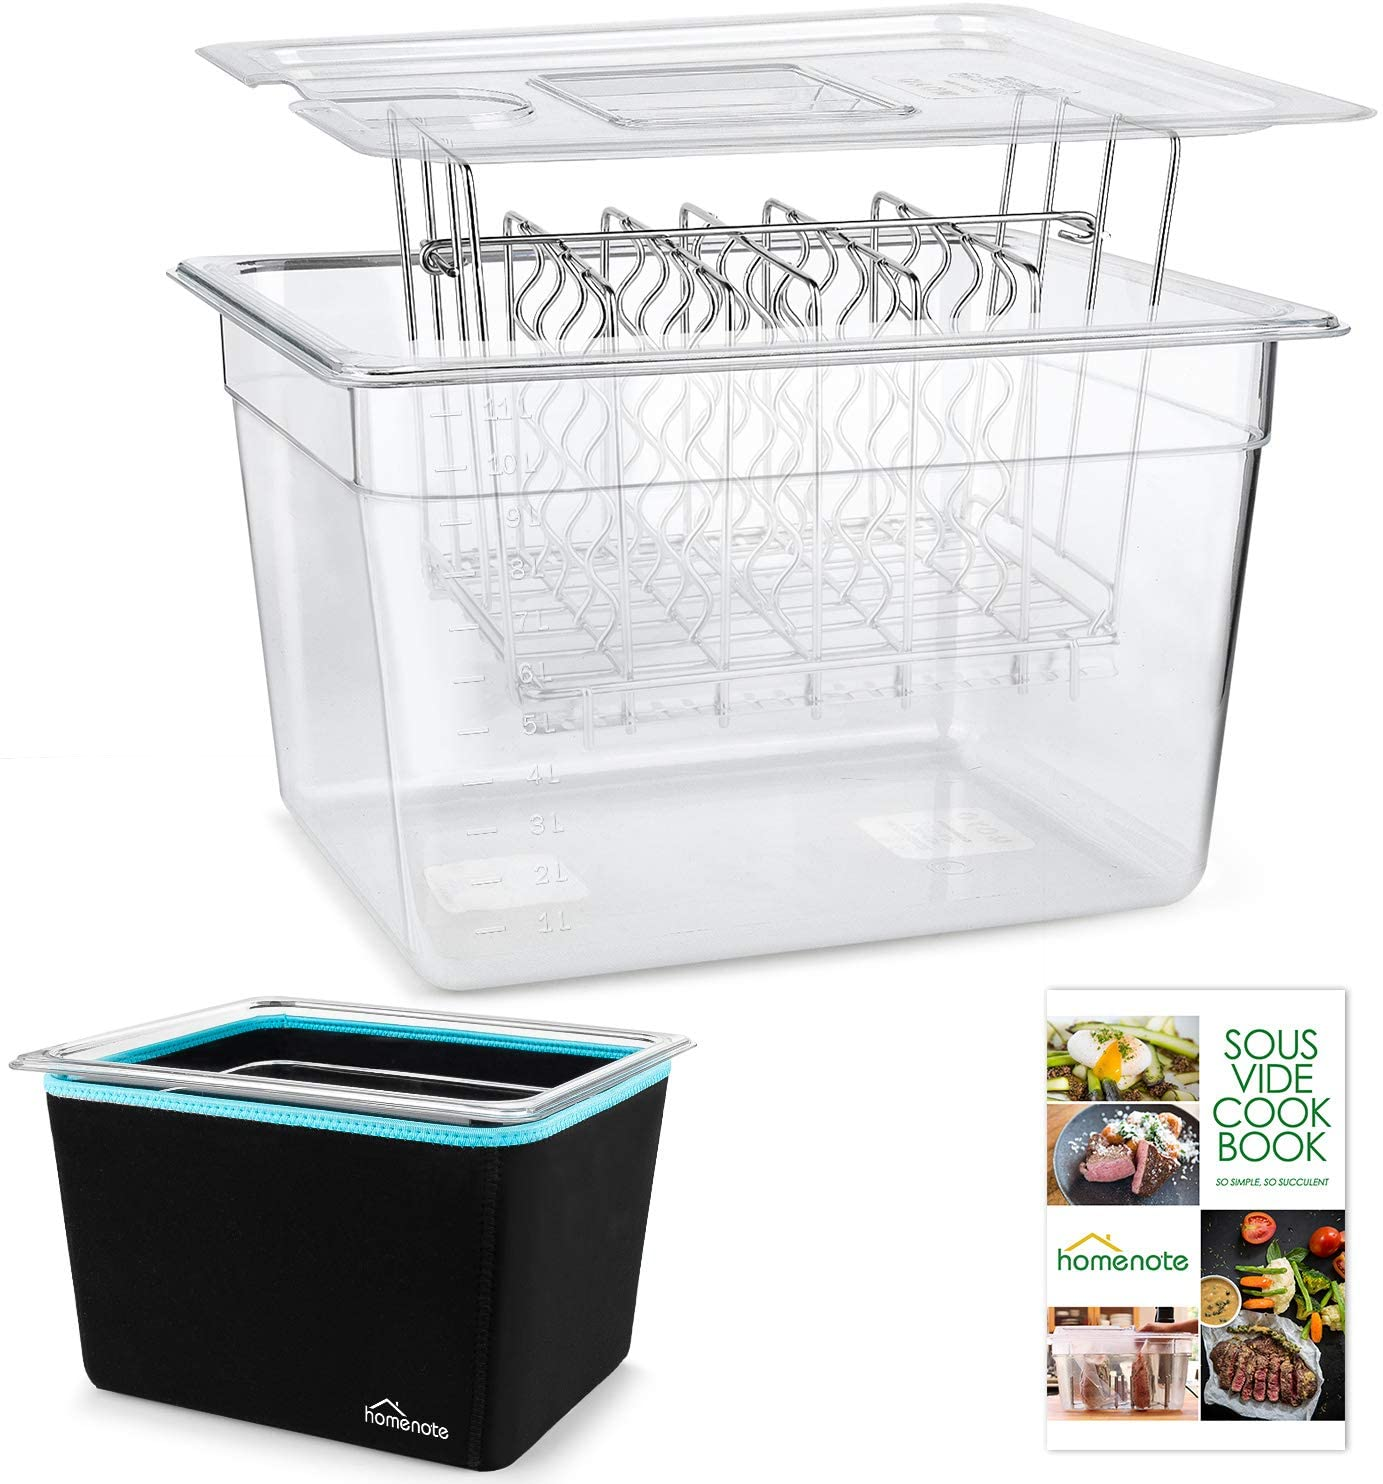 HOMENOTE Gifts Sous Vide Container 12 Quart Sleeve and Inventory cleanup selling sale Lid Rack with